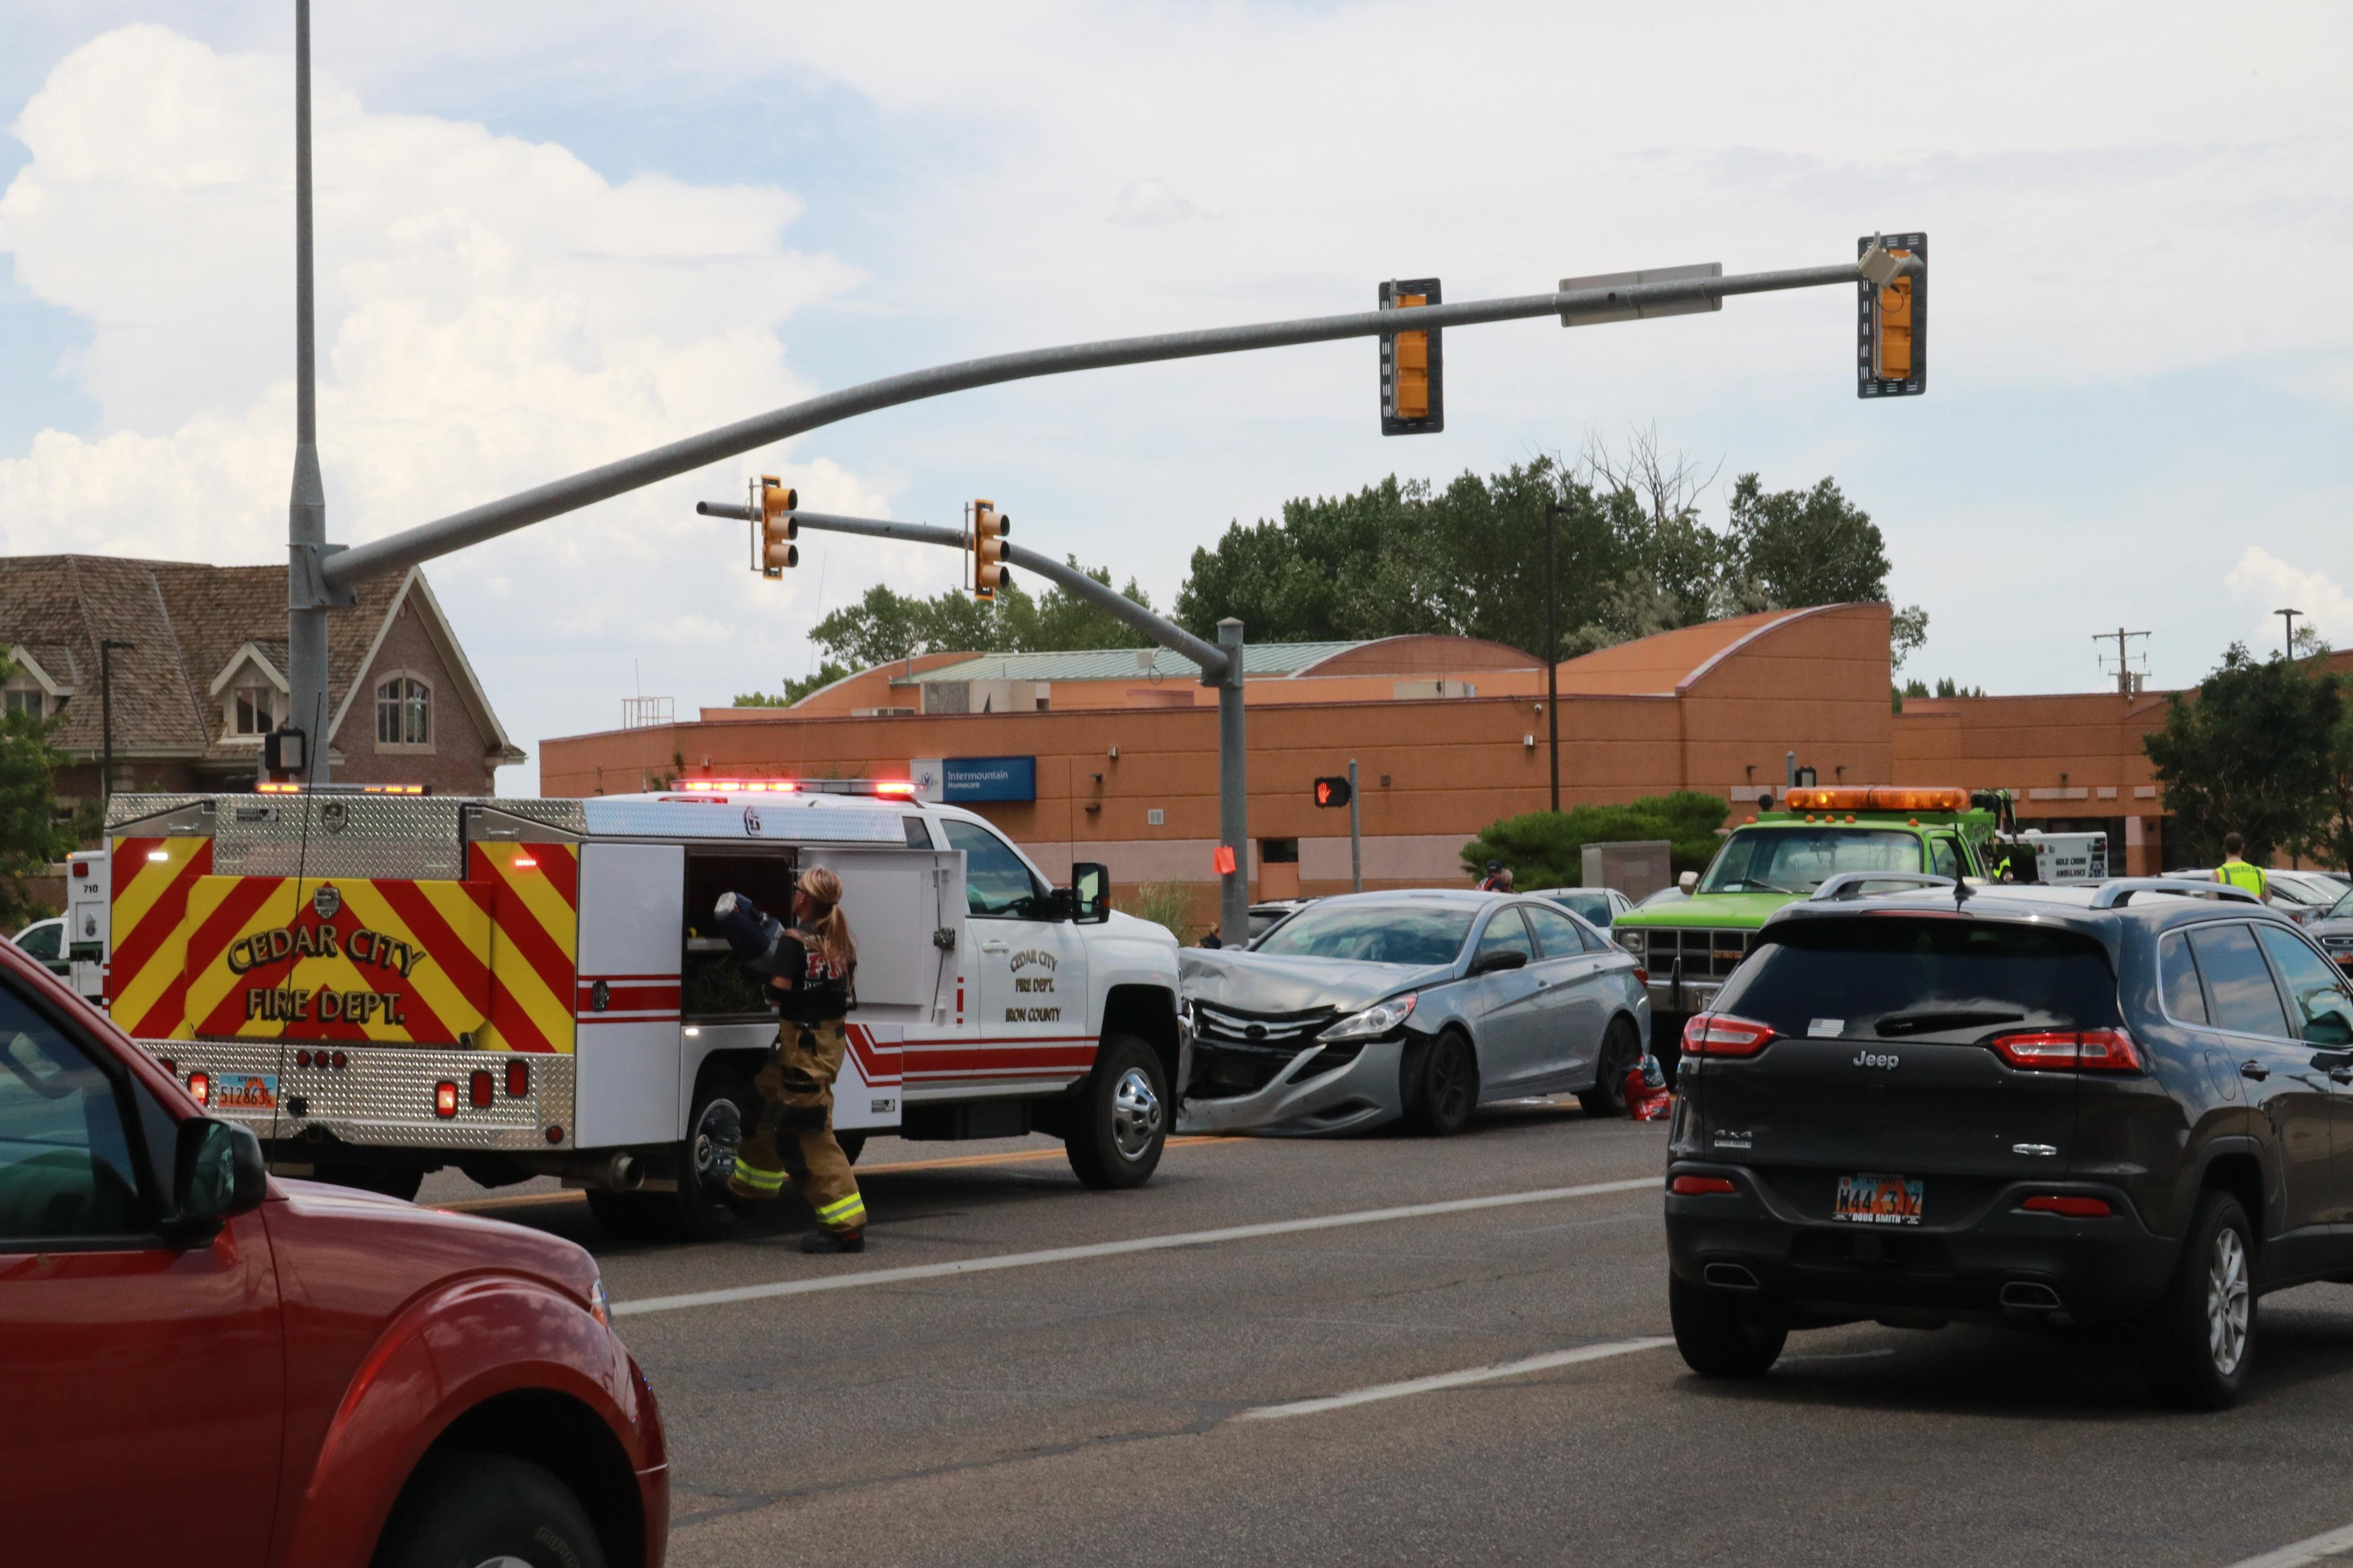 1 Crash Becomes 2 At Main Street Intersection St George News